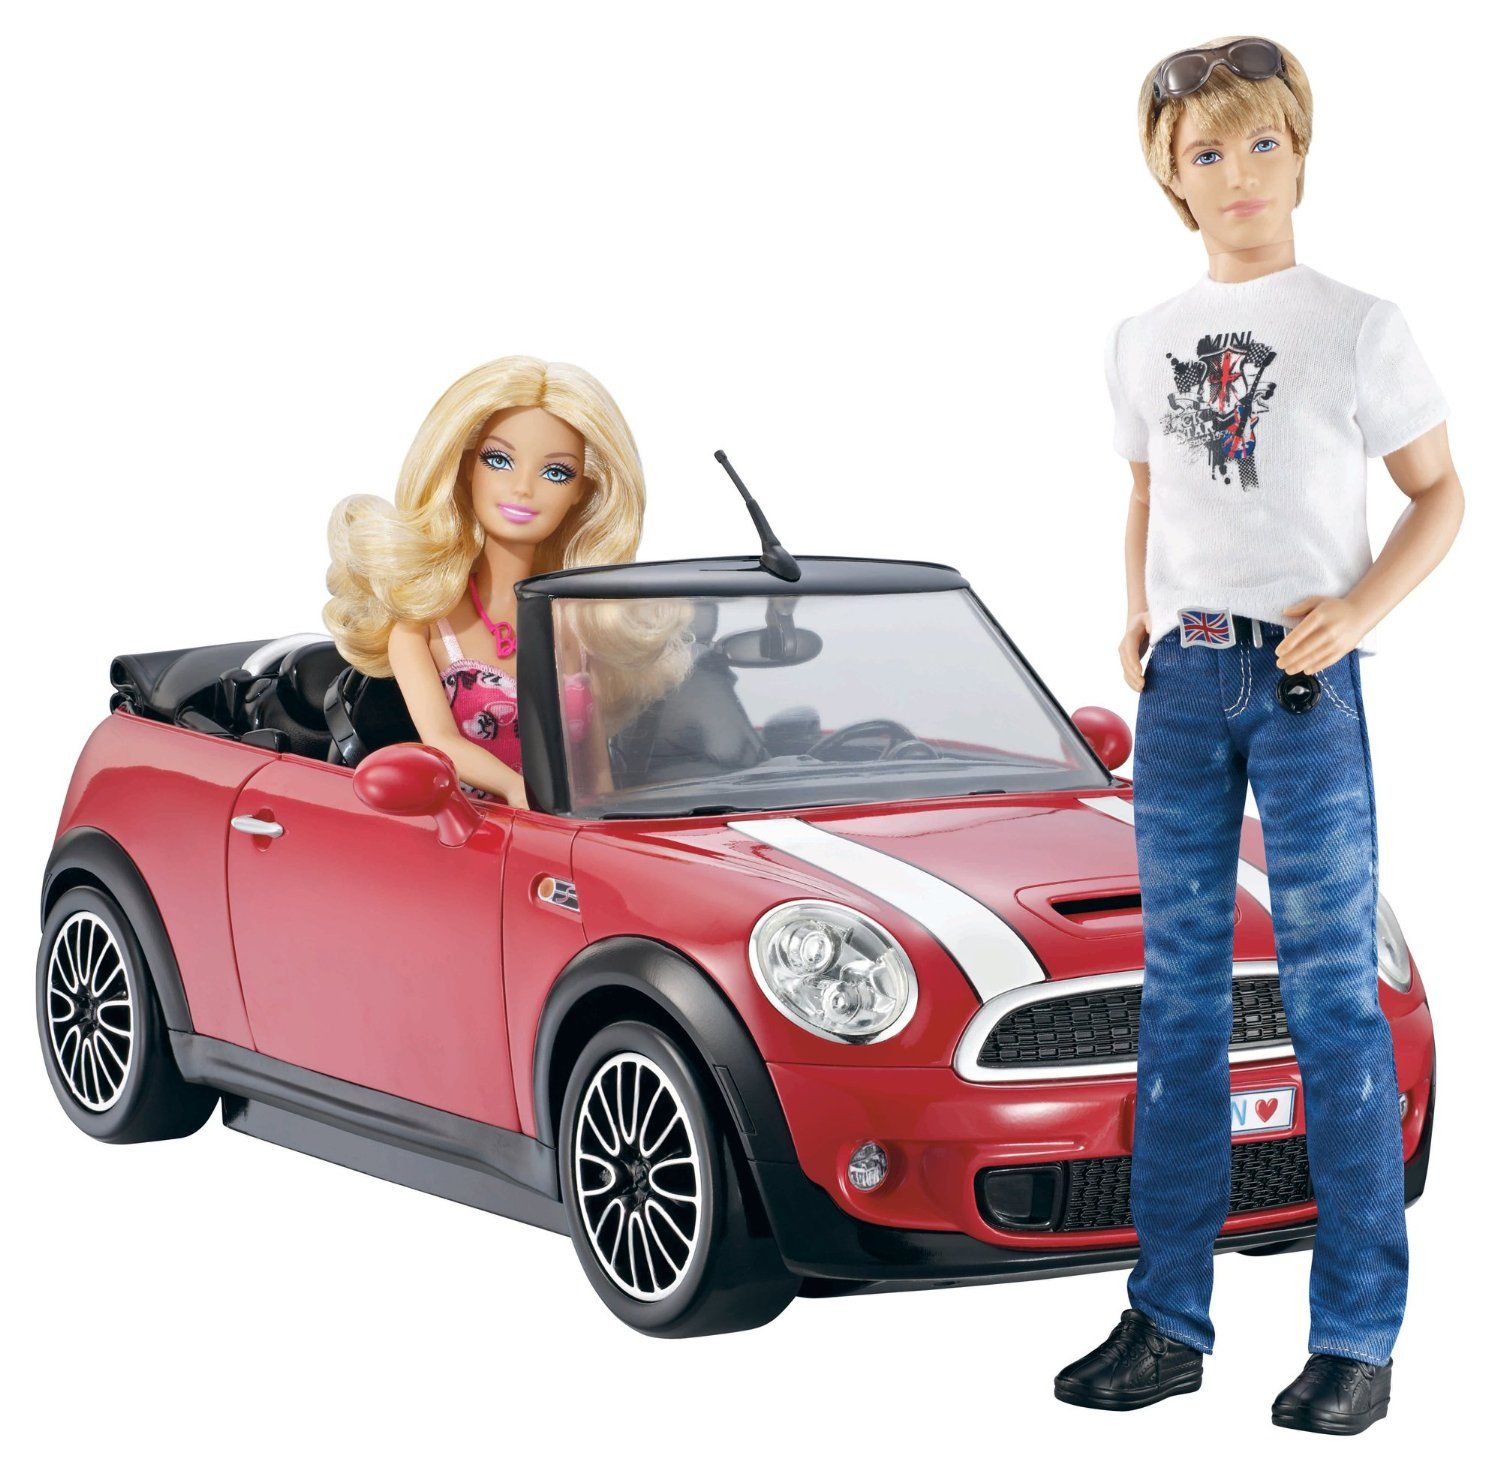 Barbie W3157 Ken Mini Cooper Mattel Amazon Es Juguetes Y